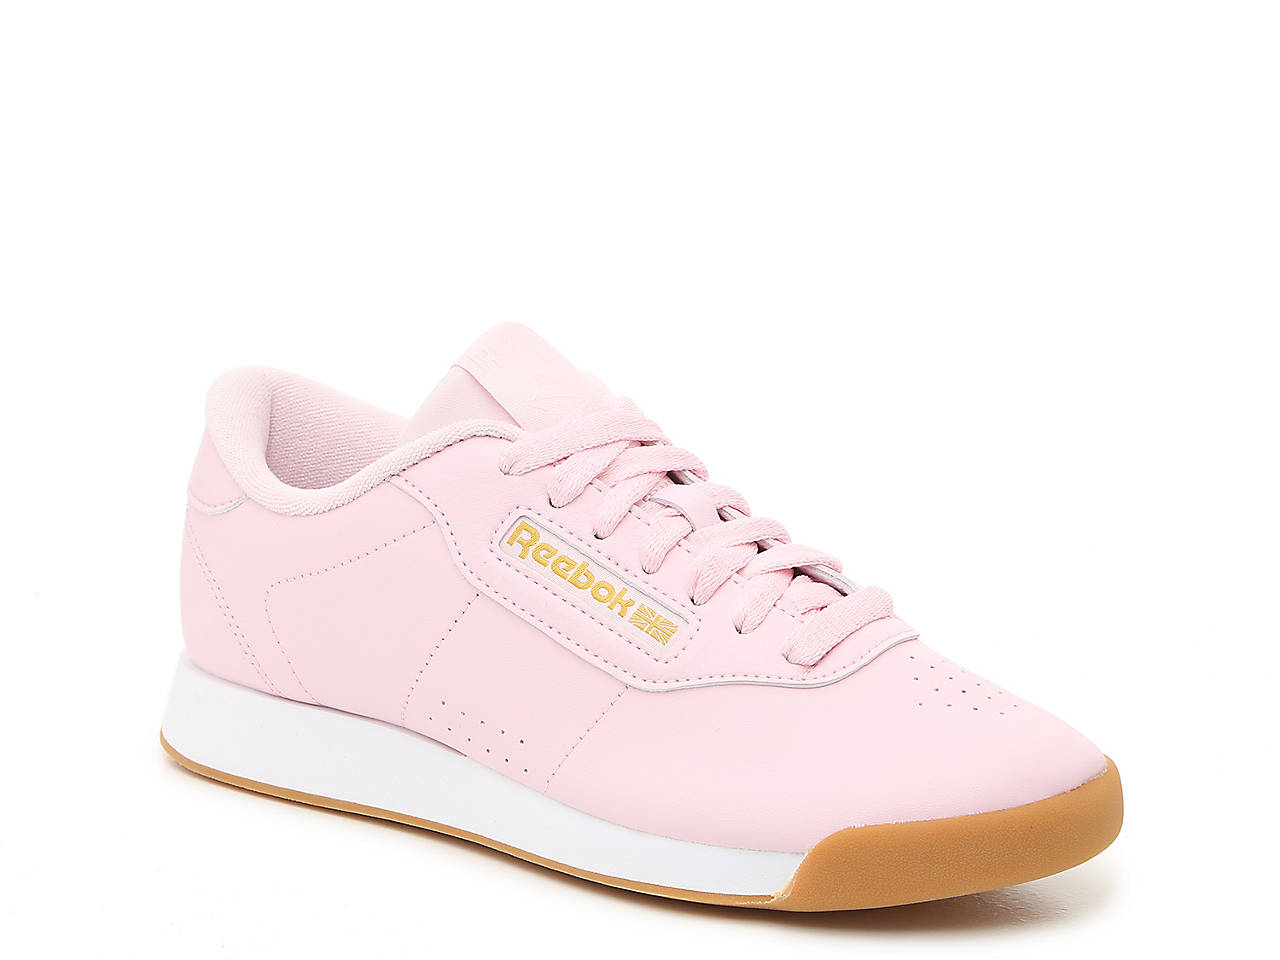 0b3a5dc5c8f5 Reebok Princess Sneaker - Women s Women s Shoes